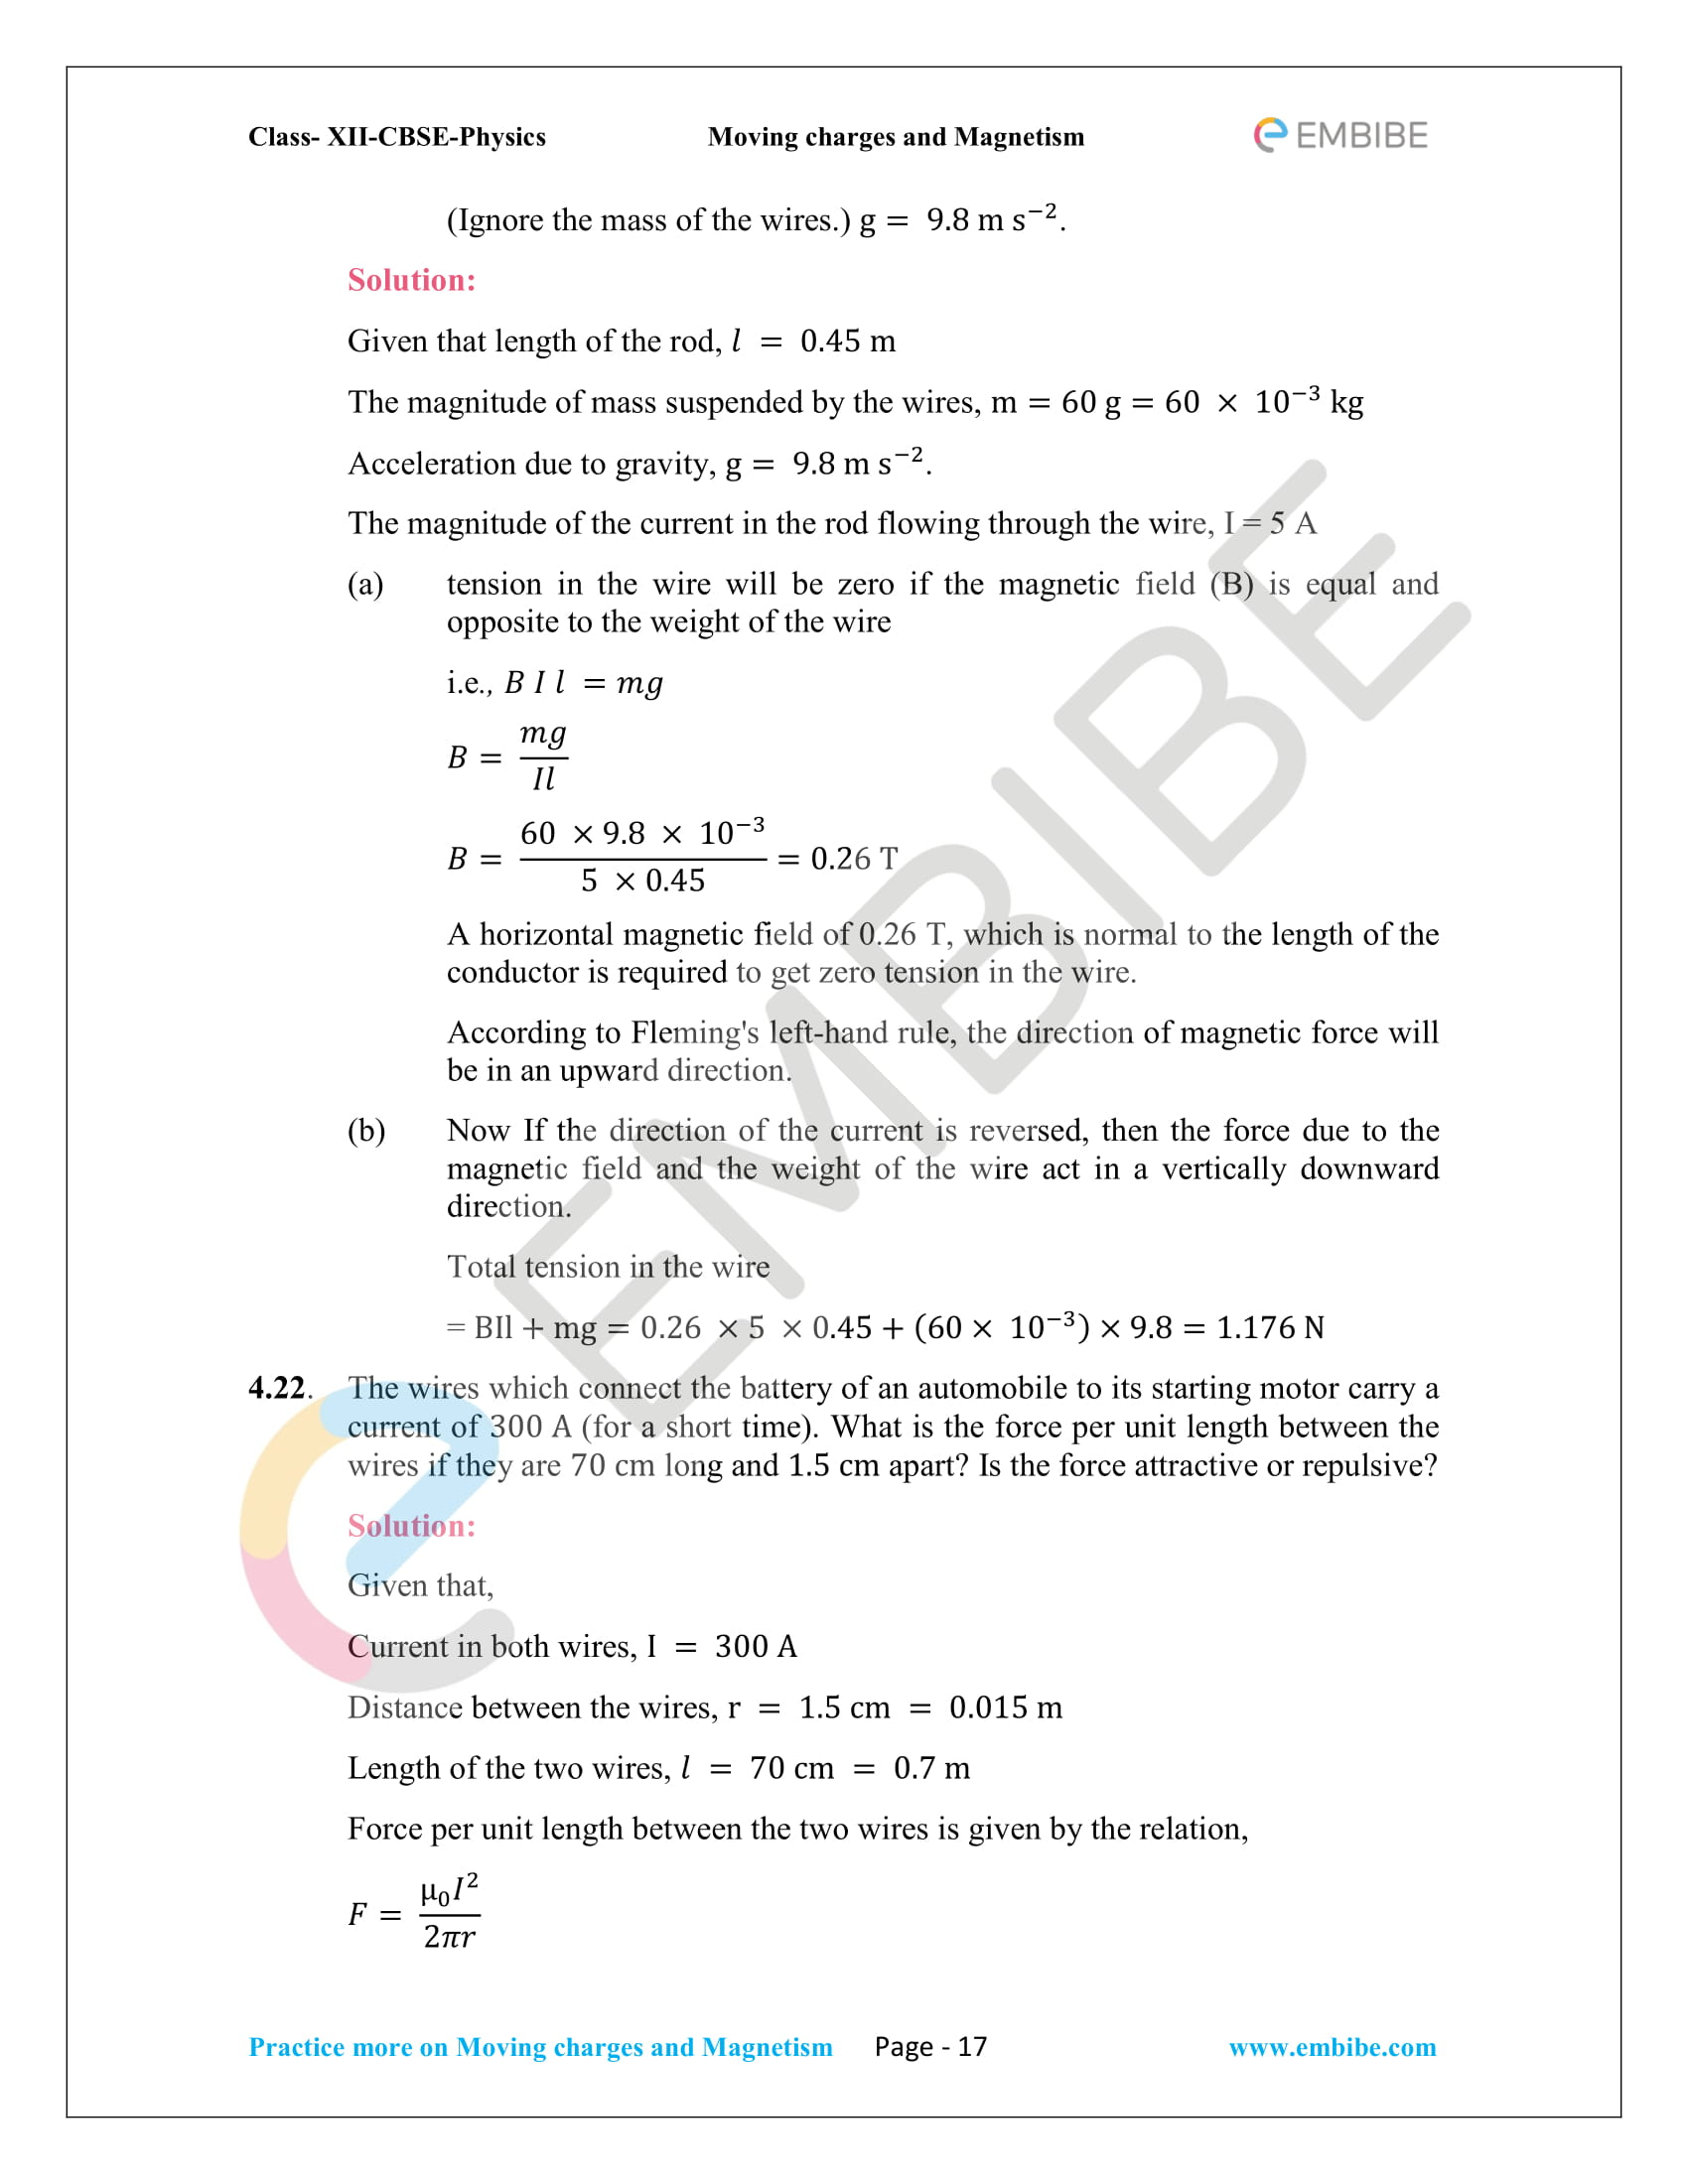 NCERT_Grade 12_Physics_Ch_04_Moving Charges and Magnetism-17